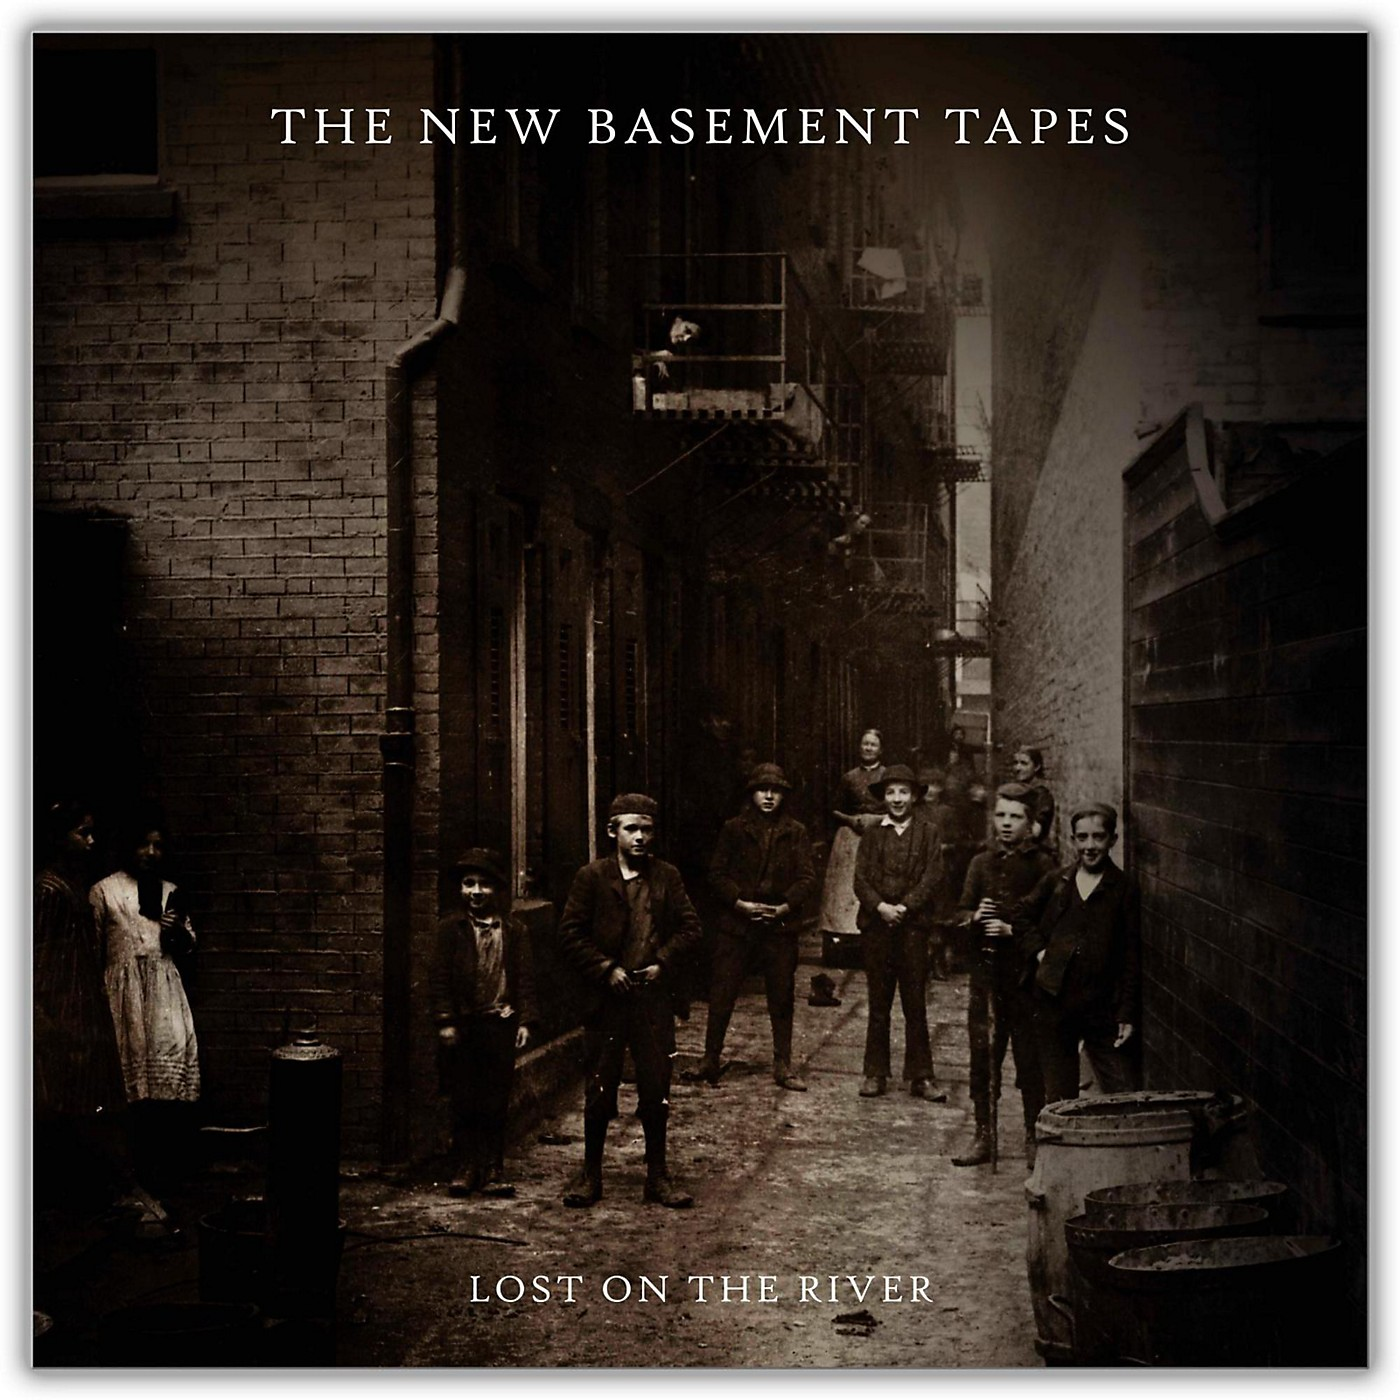 Universal Music Group The New Basement Tapes - Lost on the River Vinyl LP thumbnail